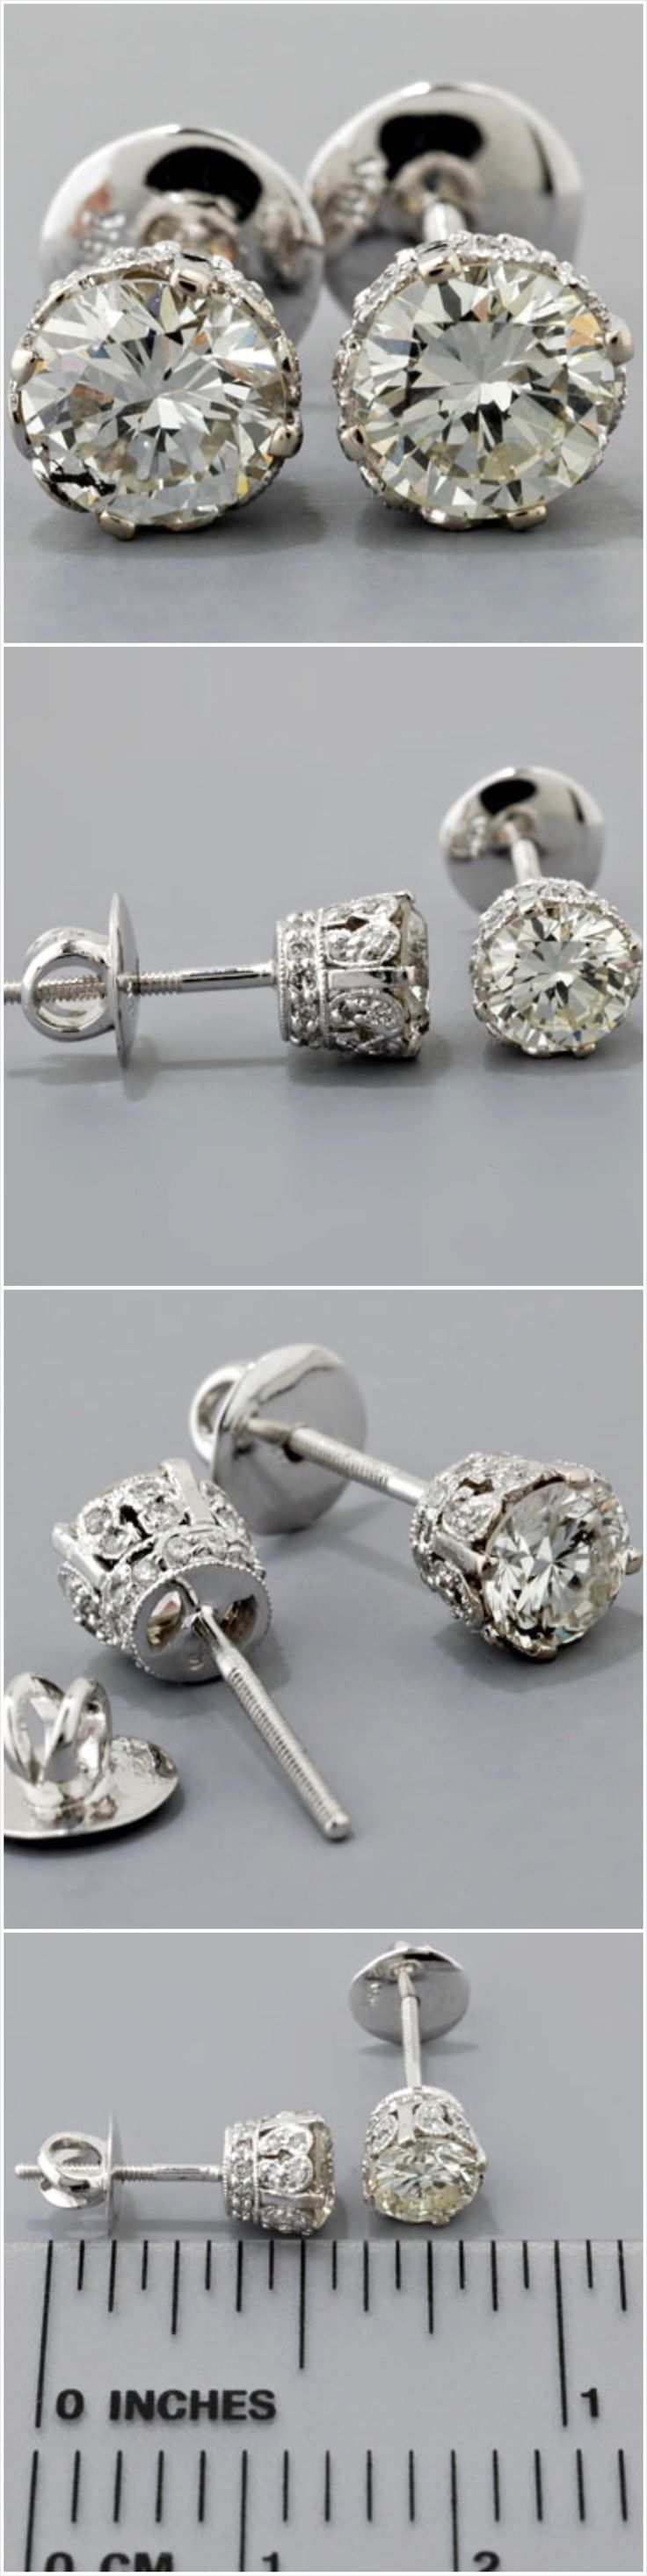 Best 20 Diamond stud earrings ideas on Pinterest